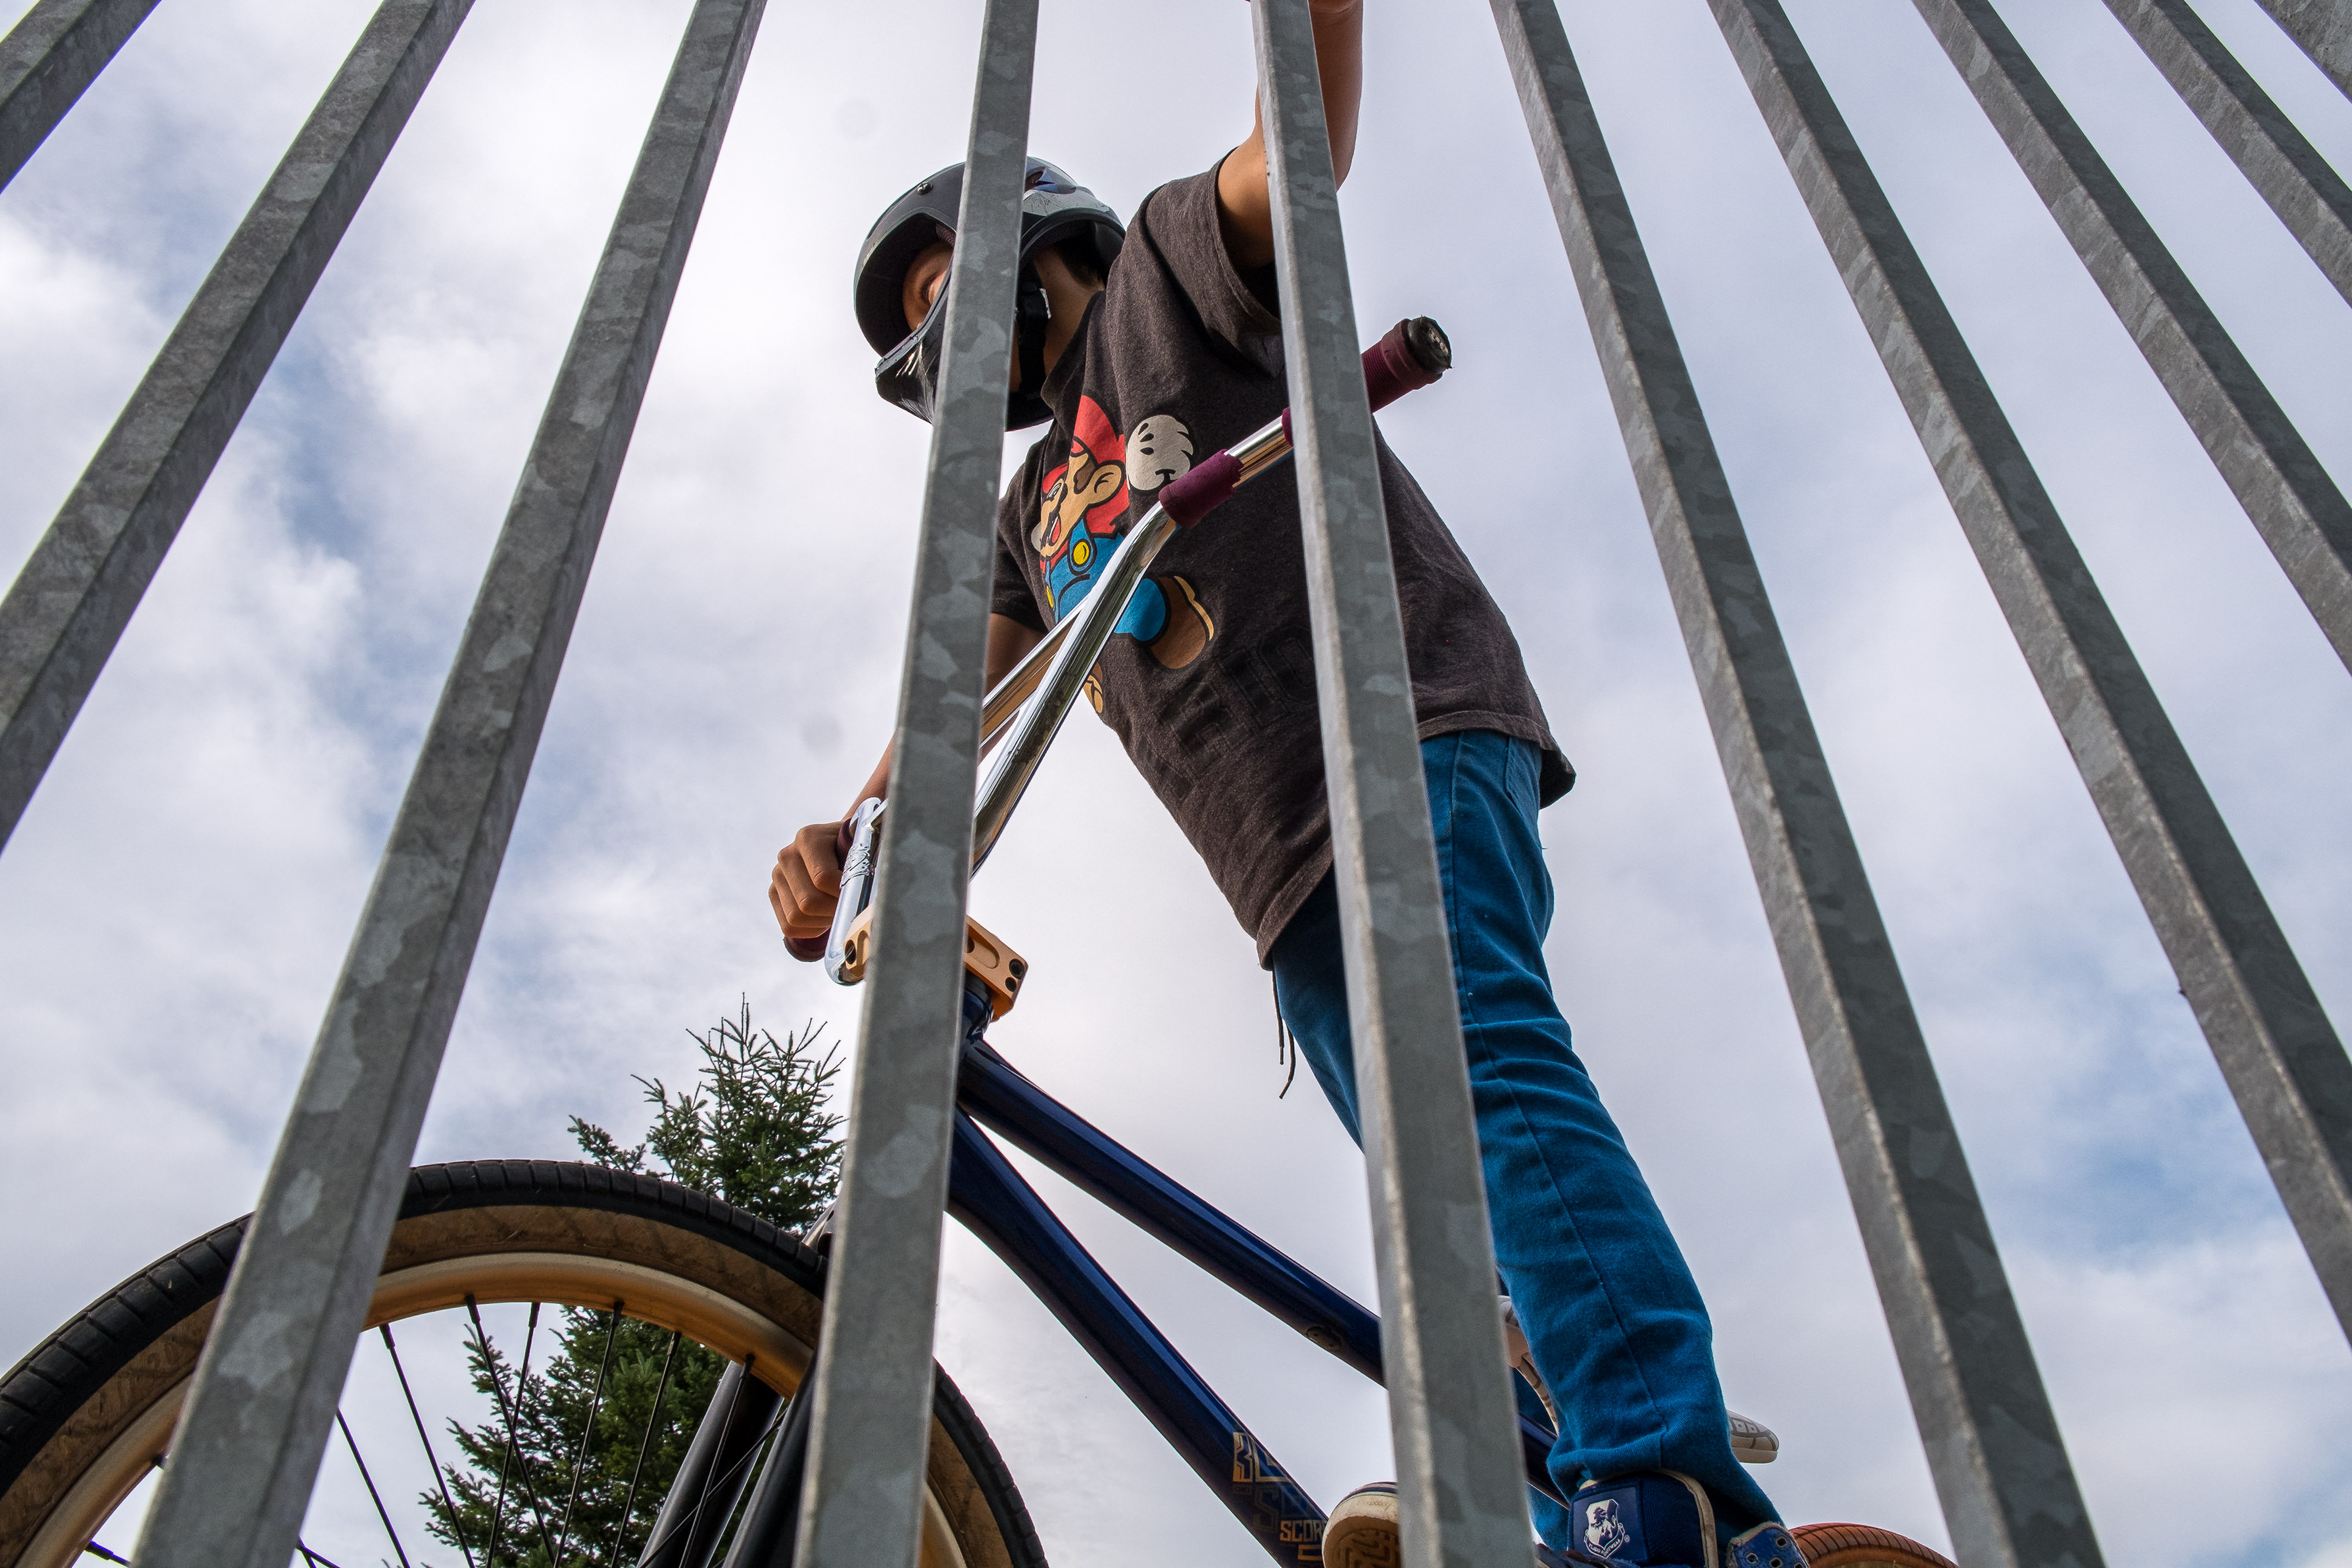 Owen BMX - Lopez Island, Washington